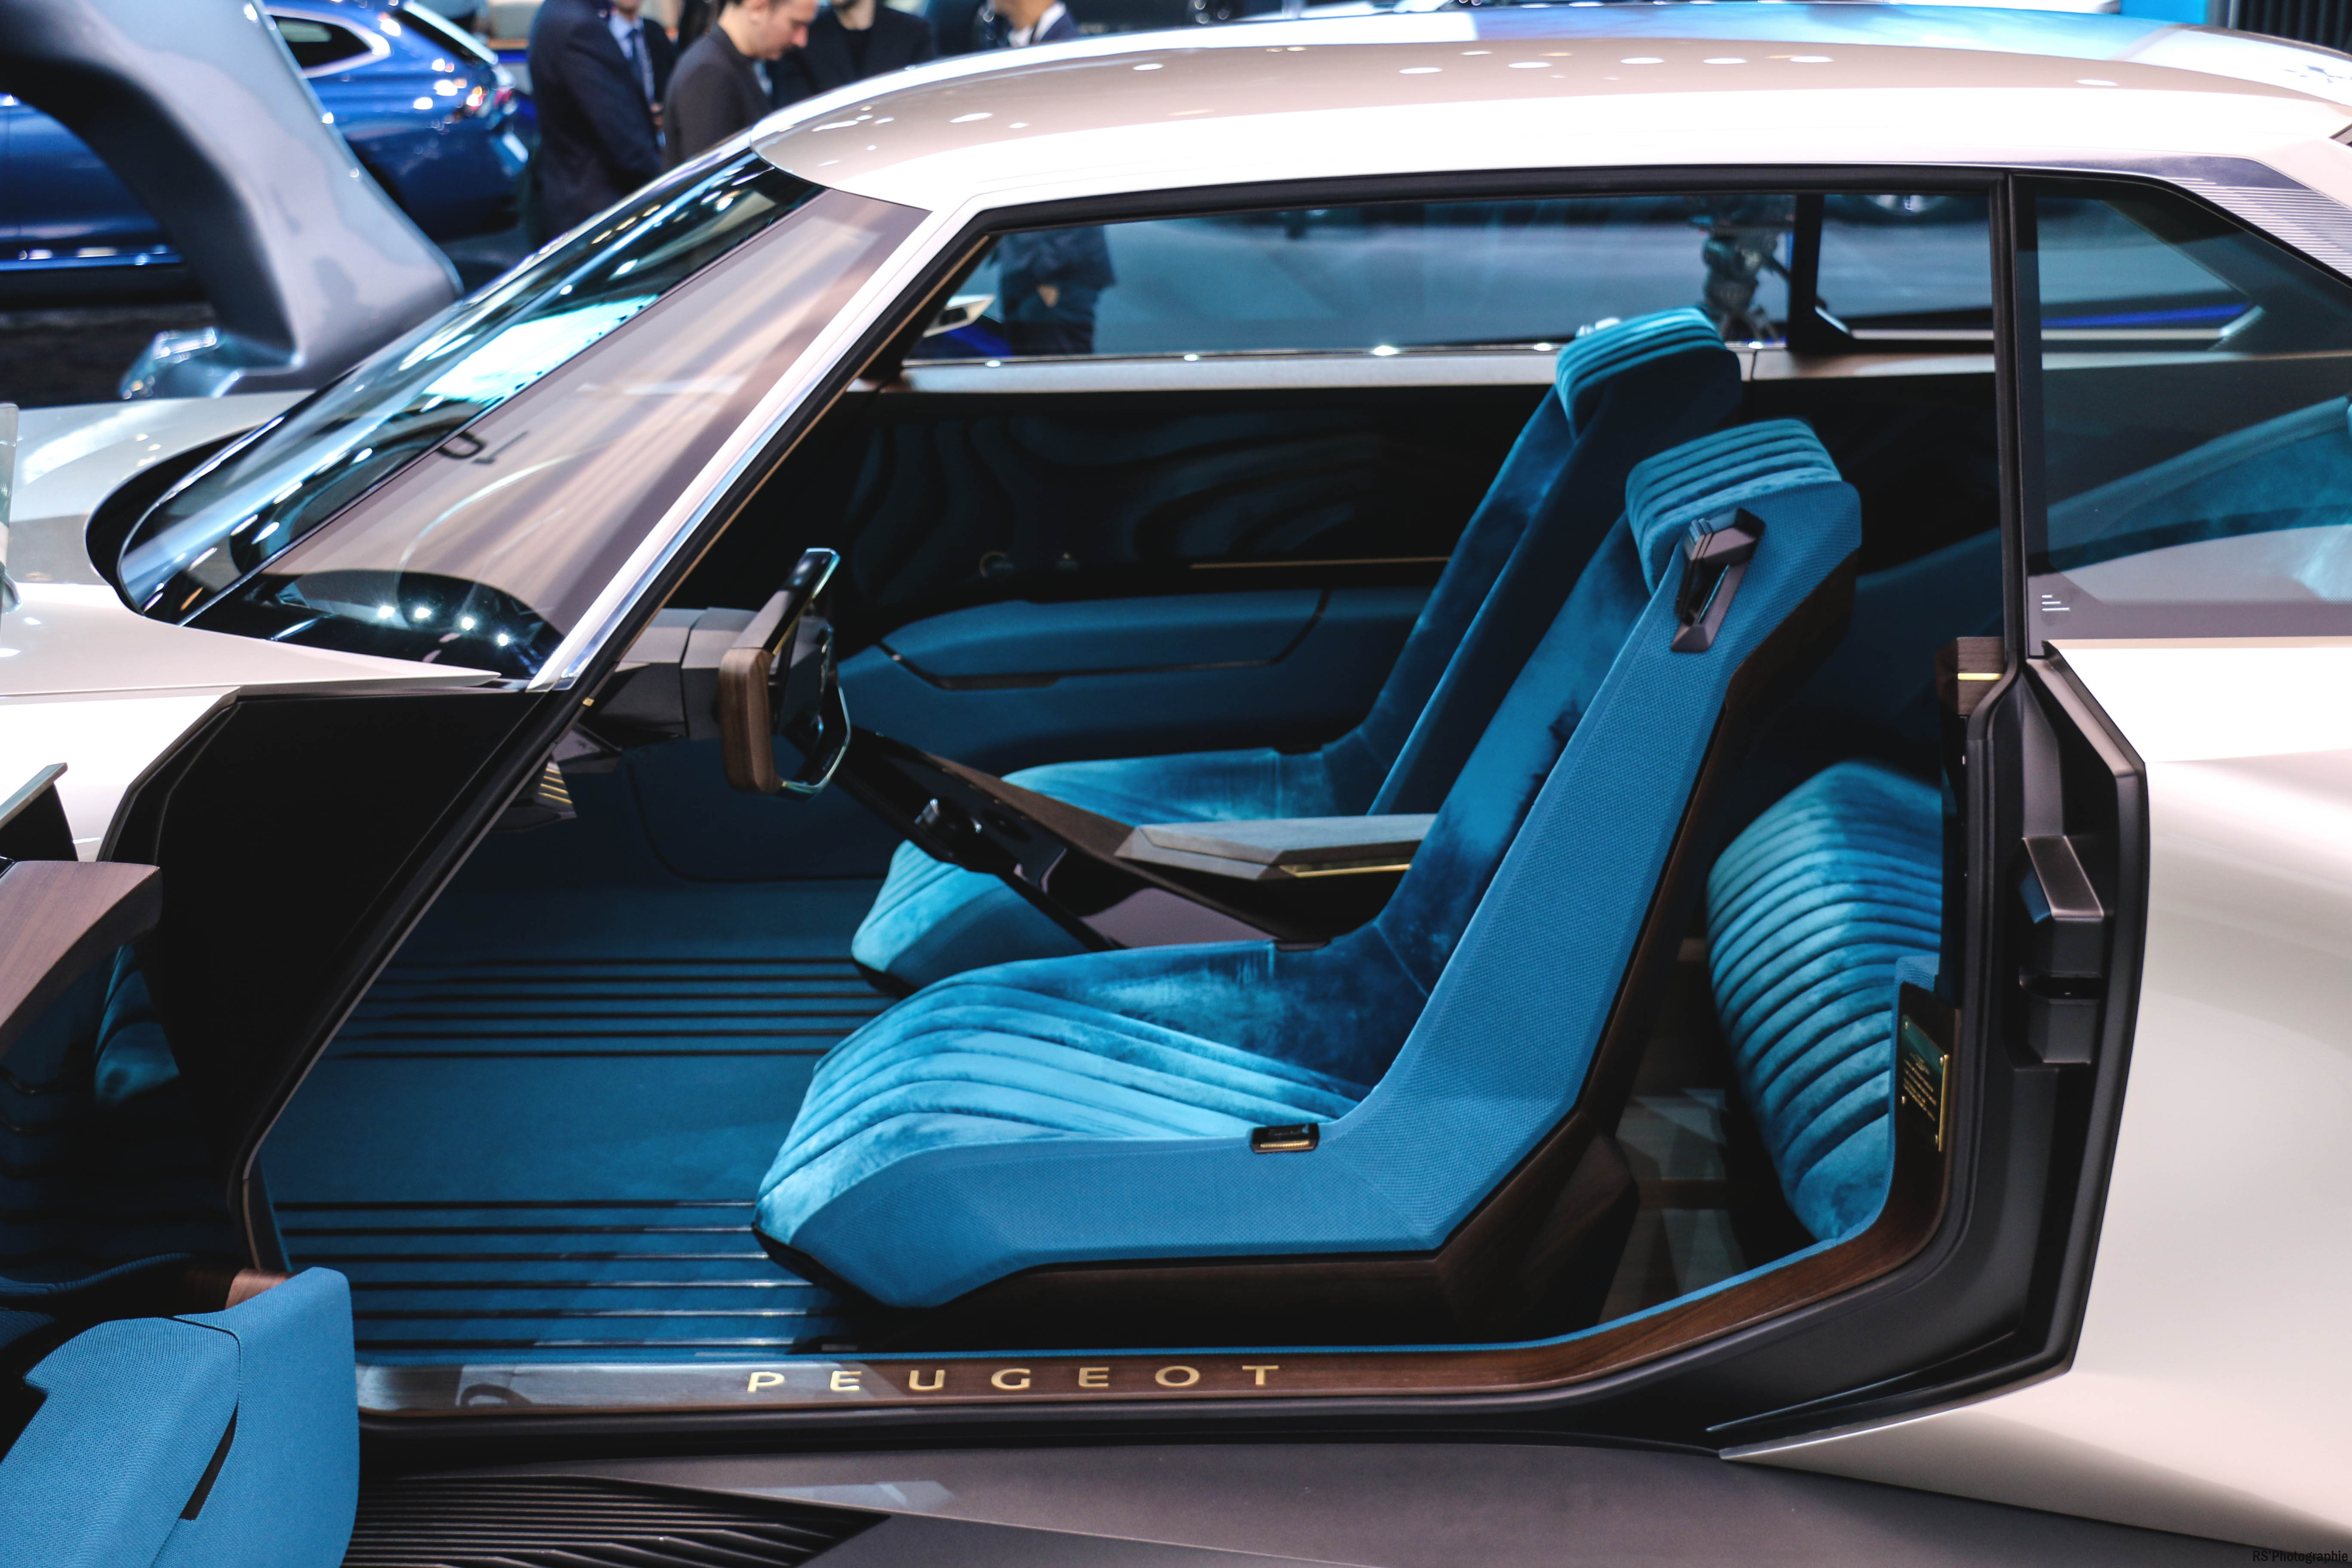 Peugeot eLegend Concept - seats - Paris Motor Show - 2018 - Mondial Auto - photo by Arnaud Demasier RS Photographie